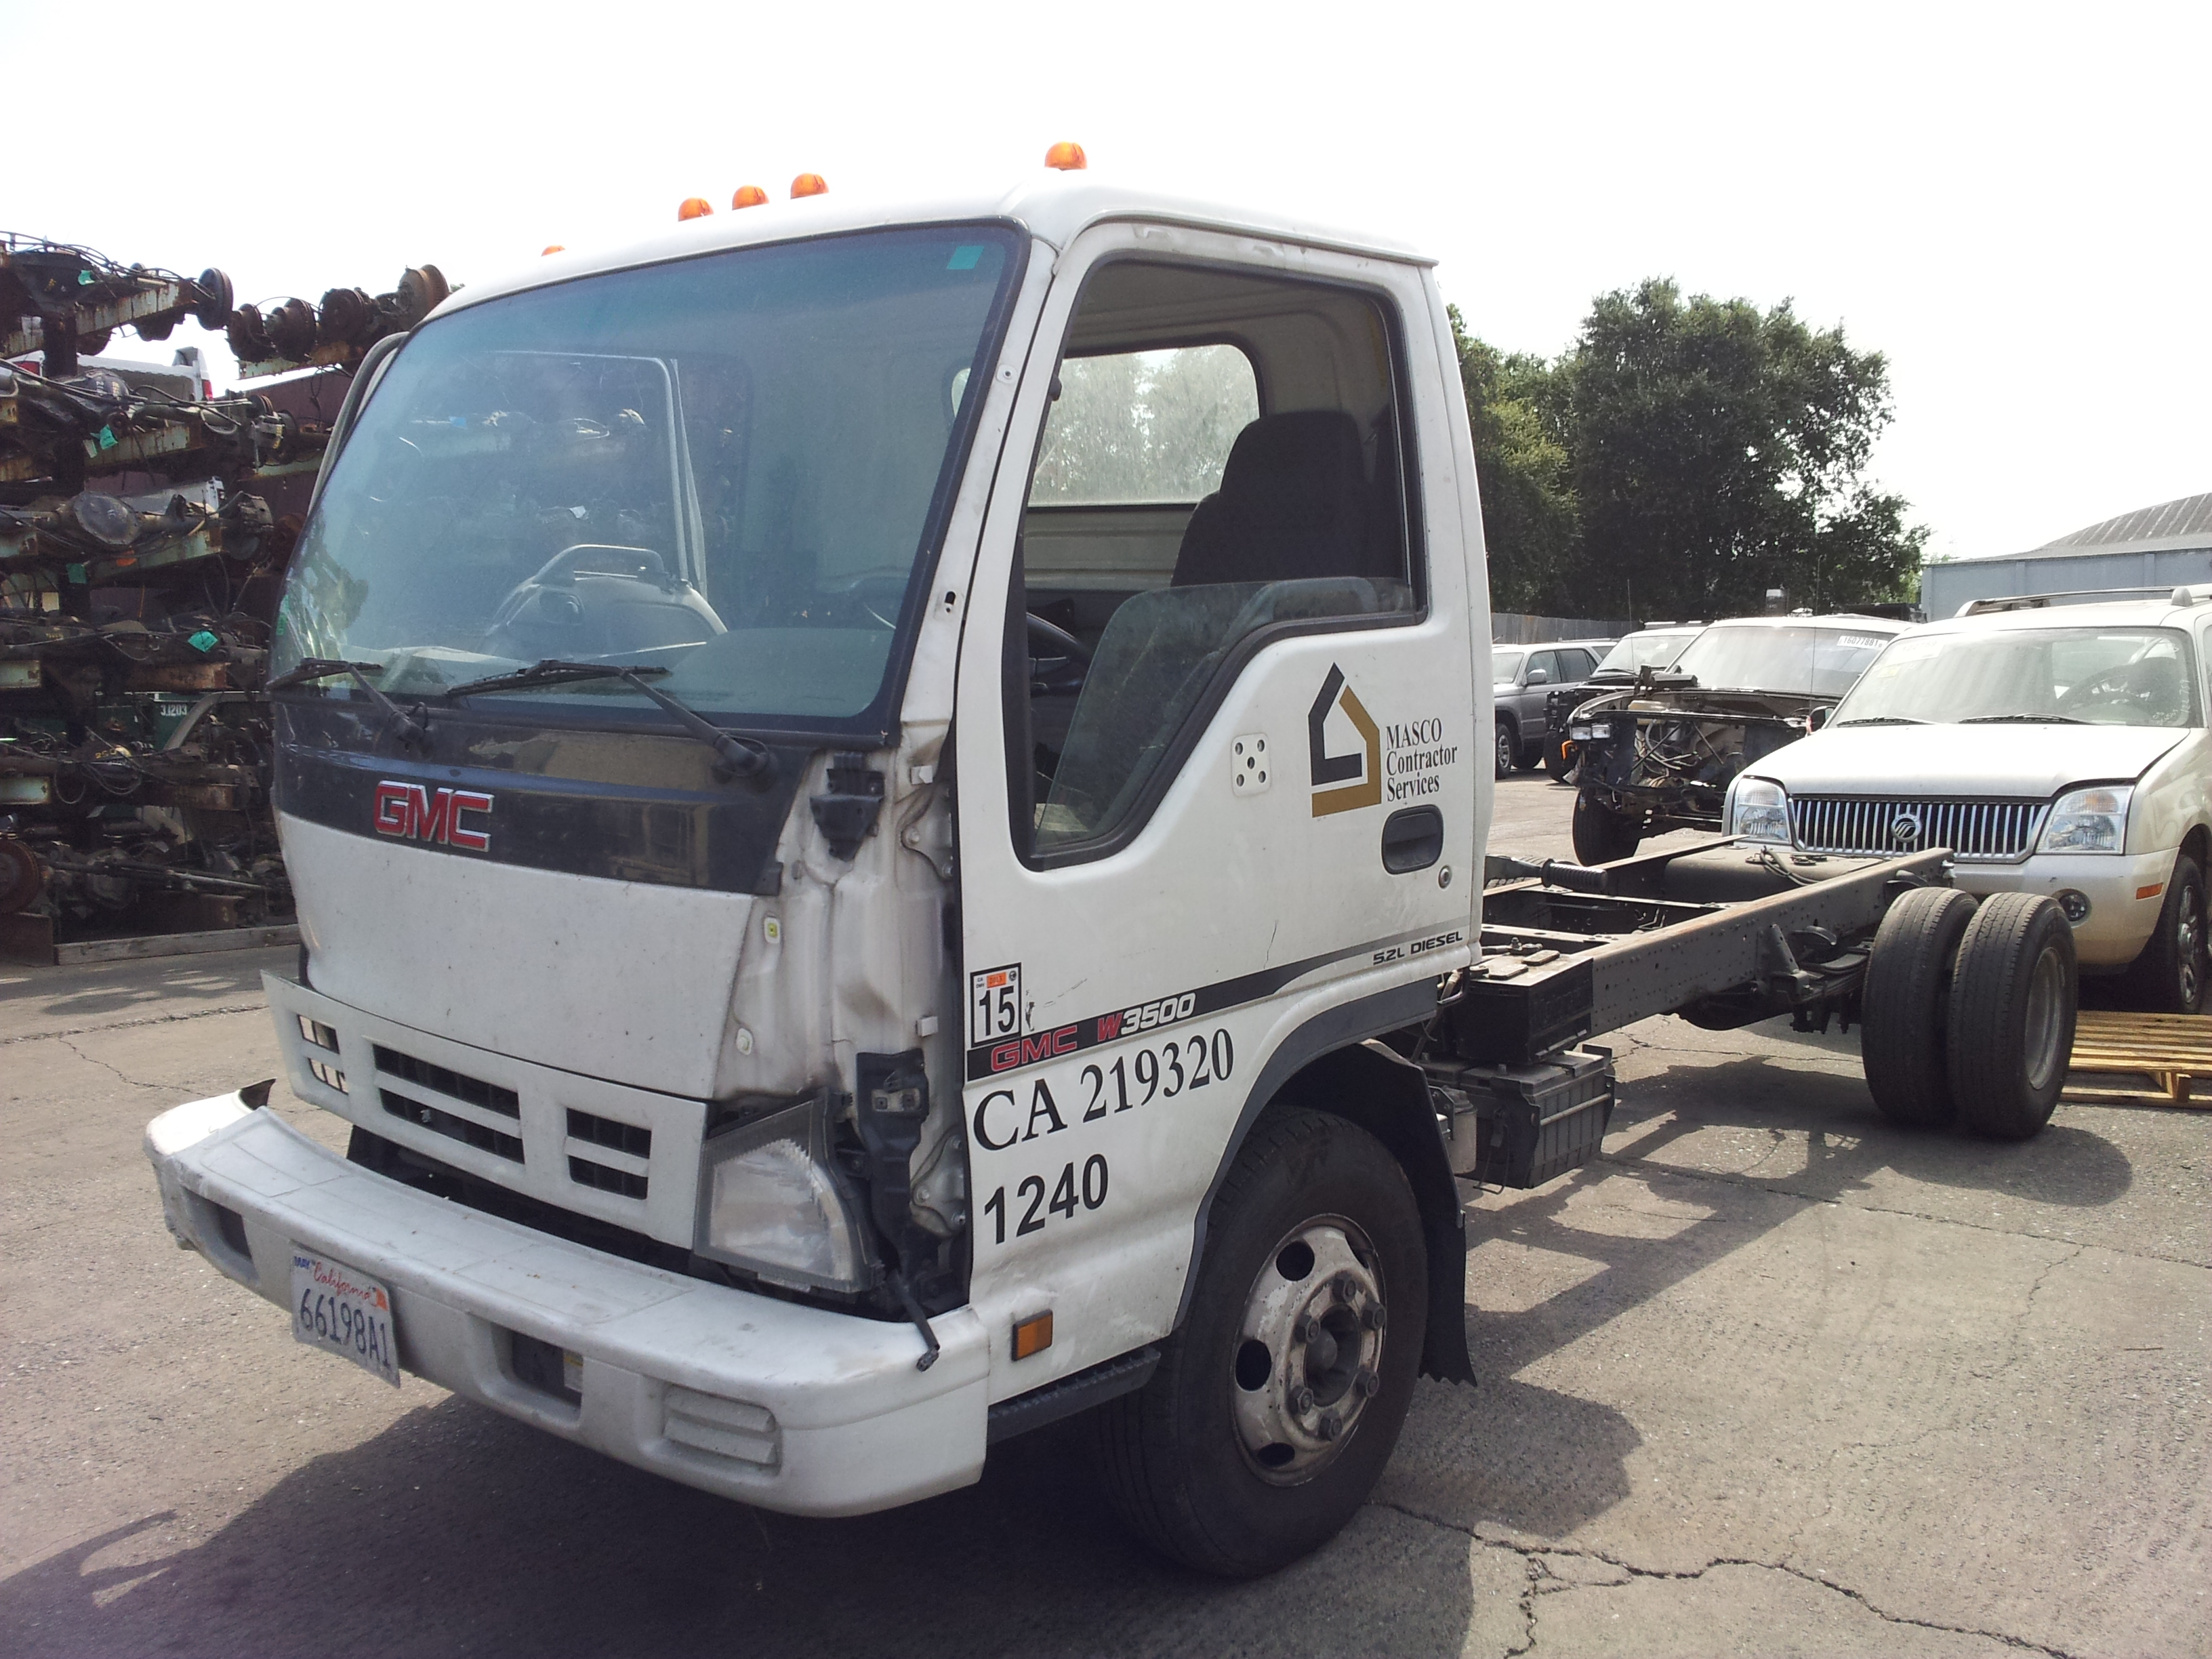 2012 08 14 15 44 33 2006 gmc w3500 box truck 5 2l rjs 4hk1 isuzu diesel engine, aisen isuzu truck fuse box location at readyjetset.co